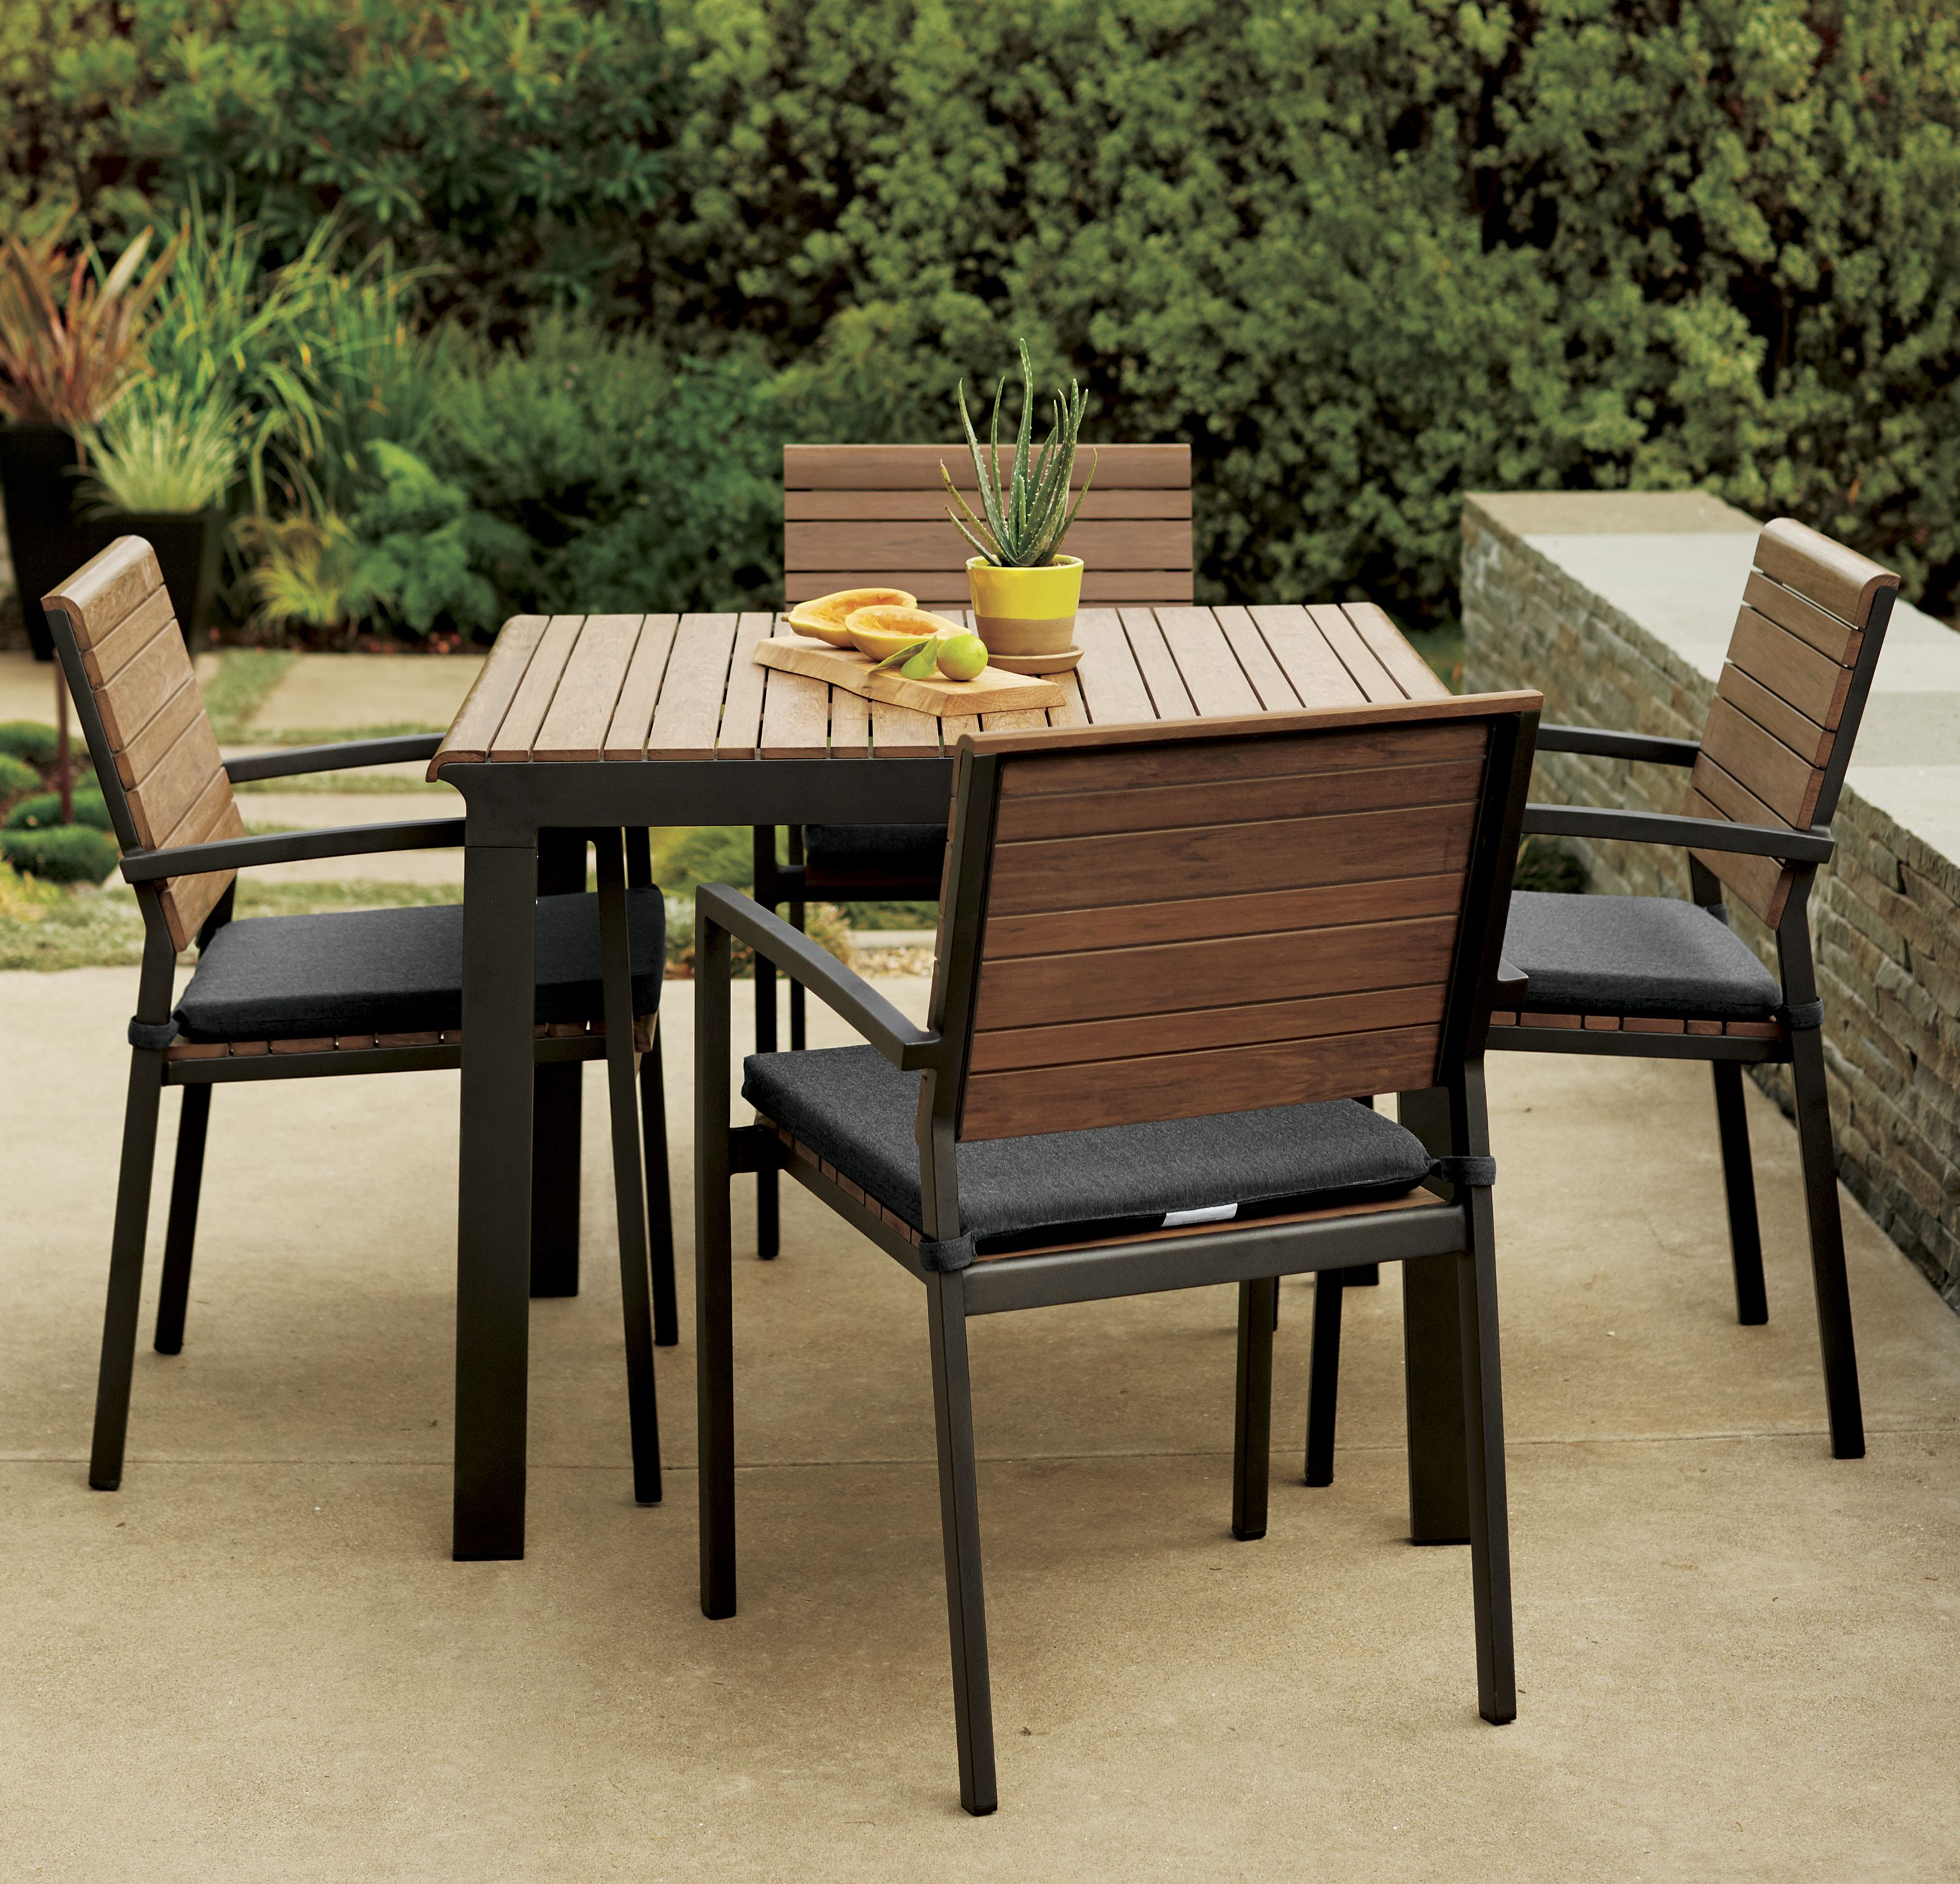 Our Stylish Rocha Outdoor Furniture Fools The Eye With The